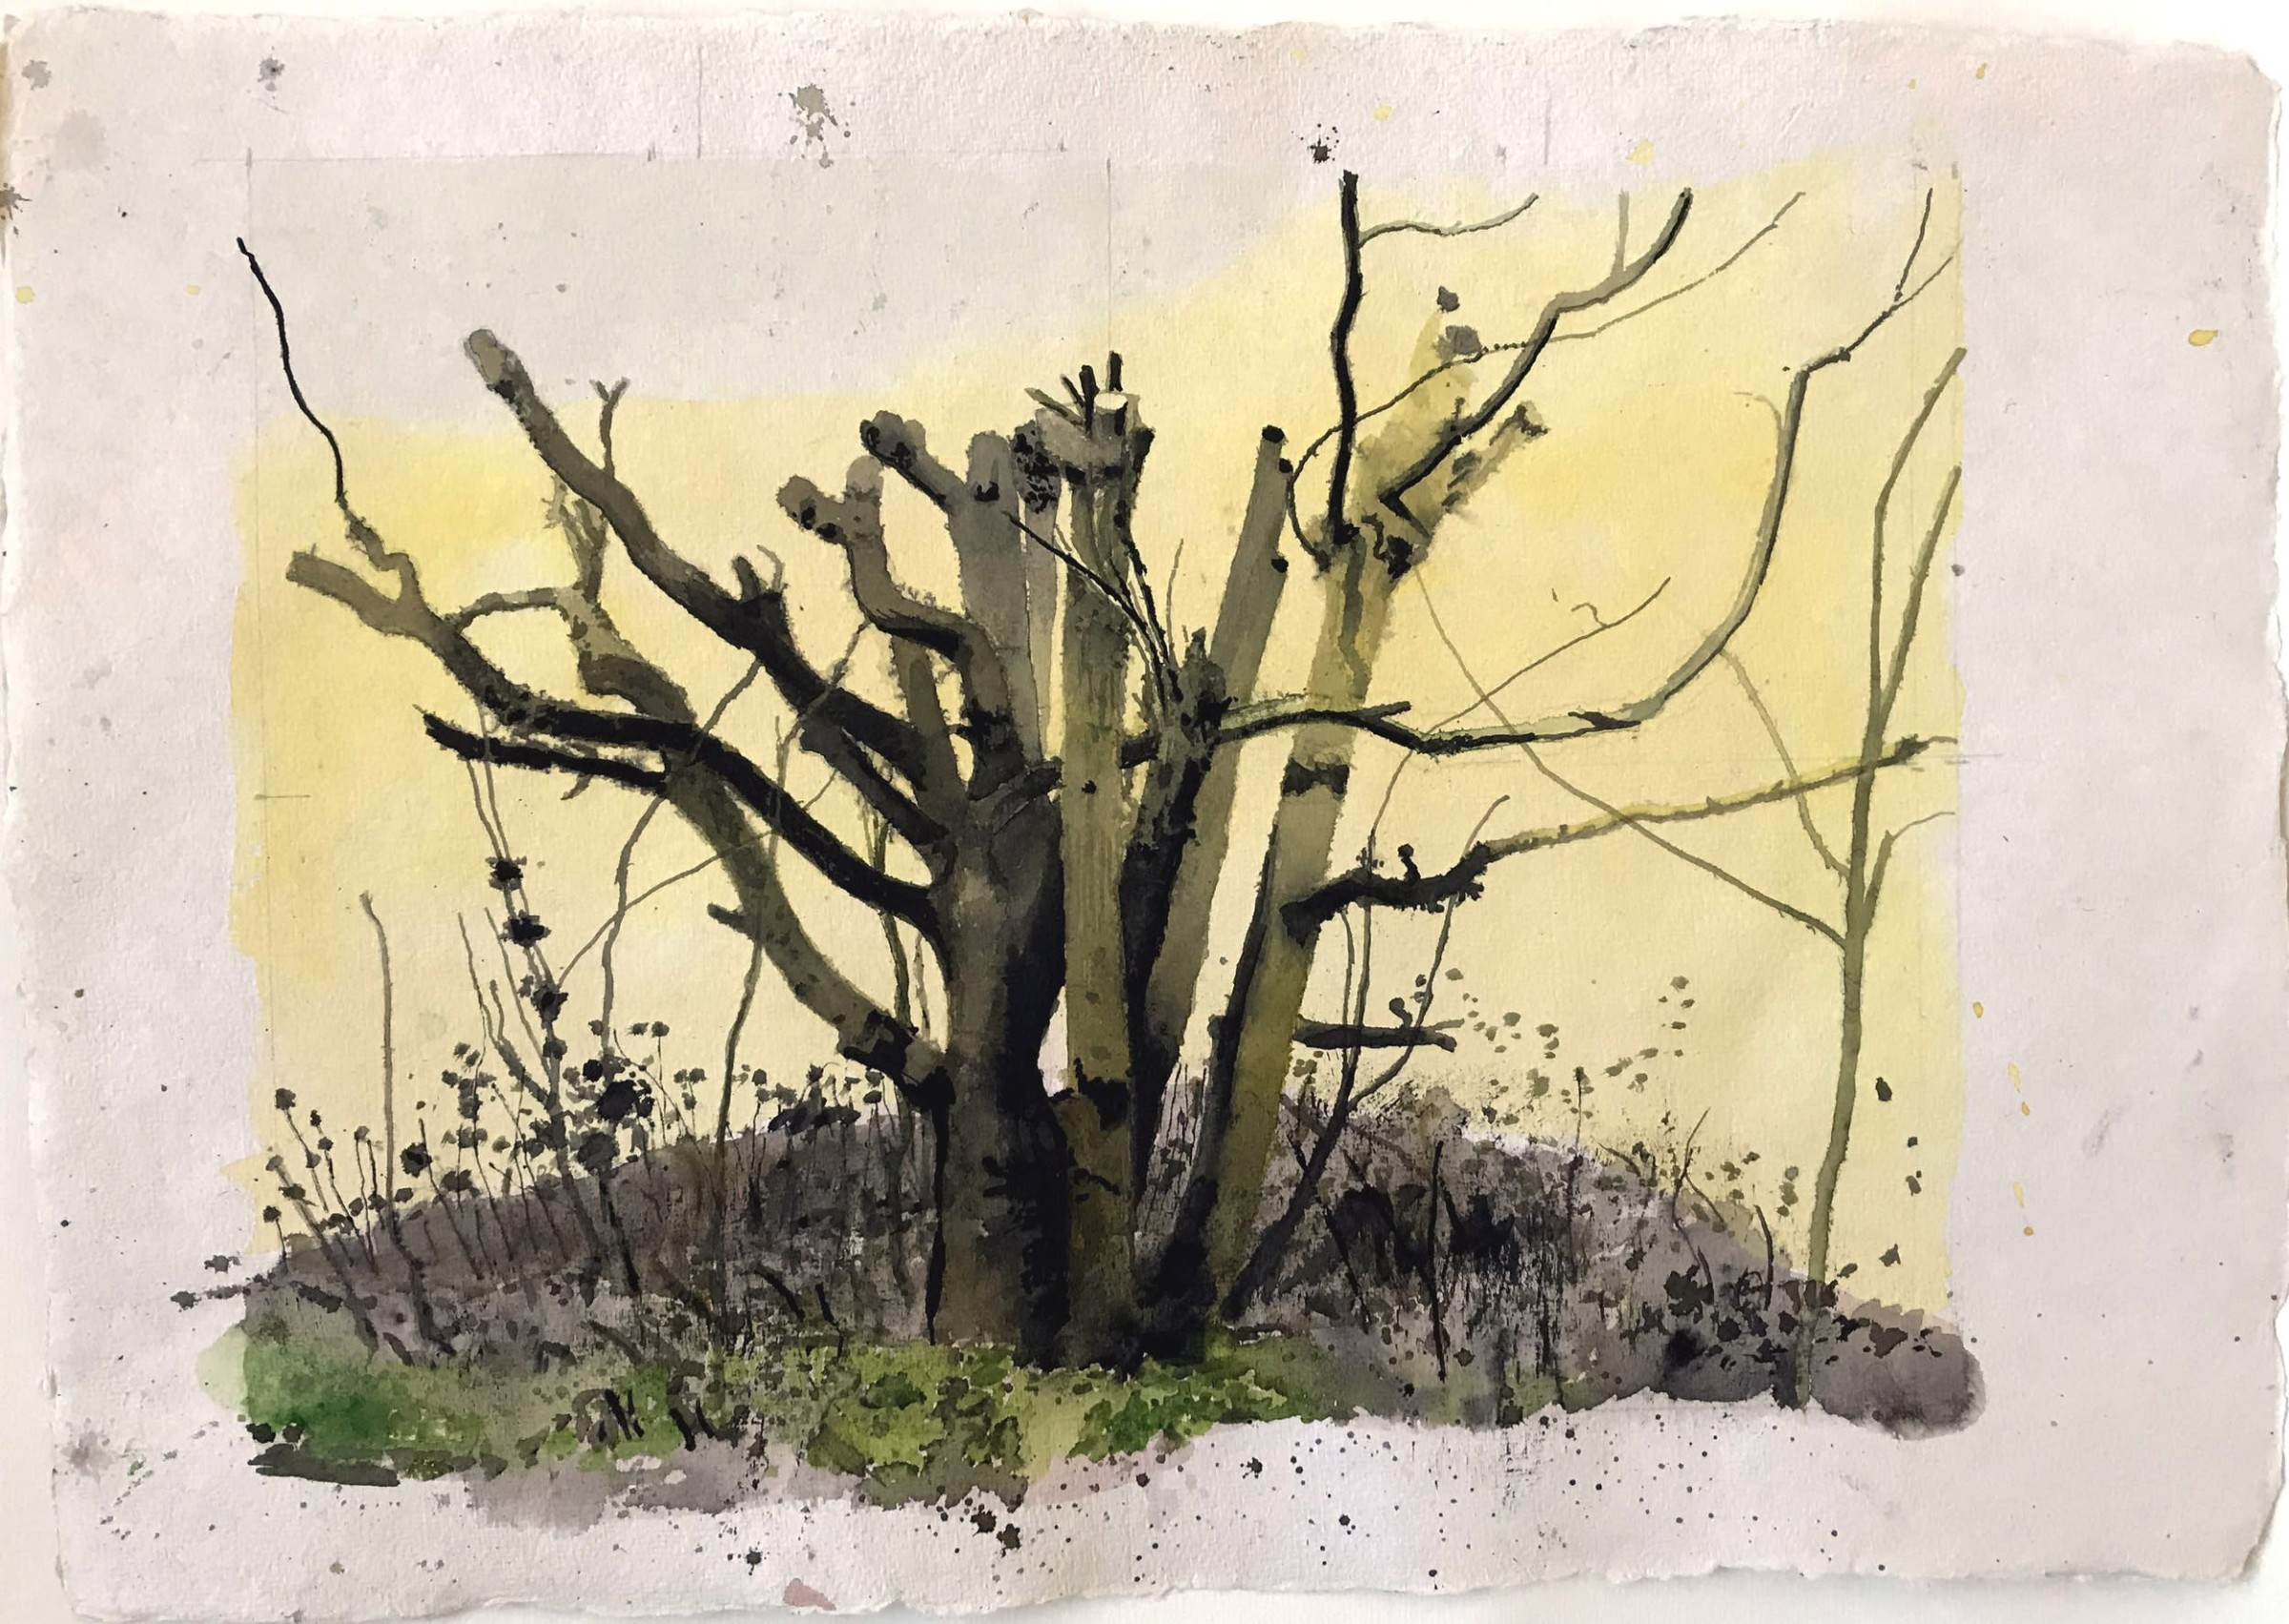 """<span class=""""link fancybox-details-link""""><a href=""""/artists/88-iain-nicholls/works/12280-iain-nicholls-elsecar-cropped-trees-study-2/"""">View Detail Page</a></span><div class=""""artist""""><span class=""""artist""""><strong>Iain Nicholls</strong></span></div><div class=""""title""""><em>Elsecar Cropped Trees Study 2</em></div><div class=""""medium"""">watercolour on paper - mounted on board</div><div class=""""dimensions"""">Artwork: 43 x 60 cm</div><div class=""""price"""">£420.00</div>"""